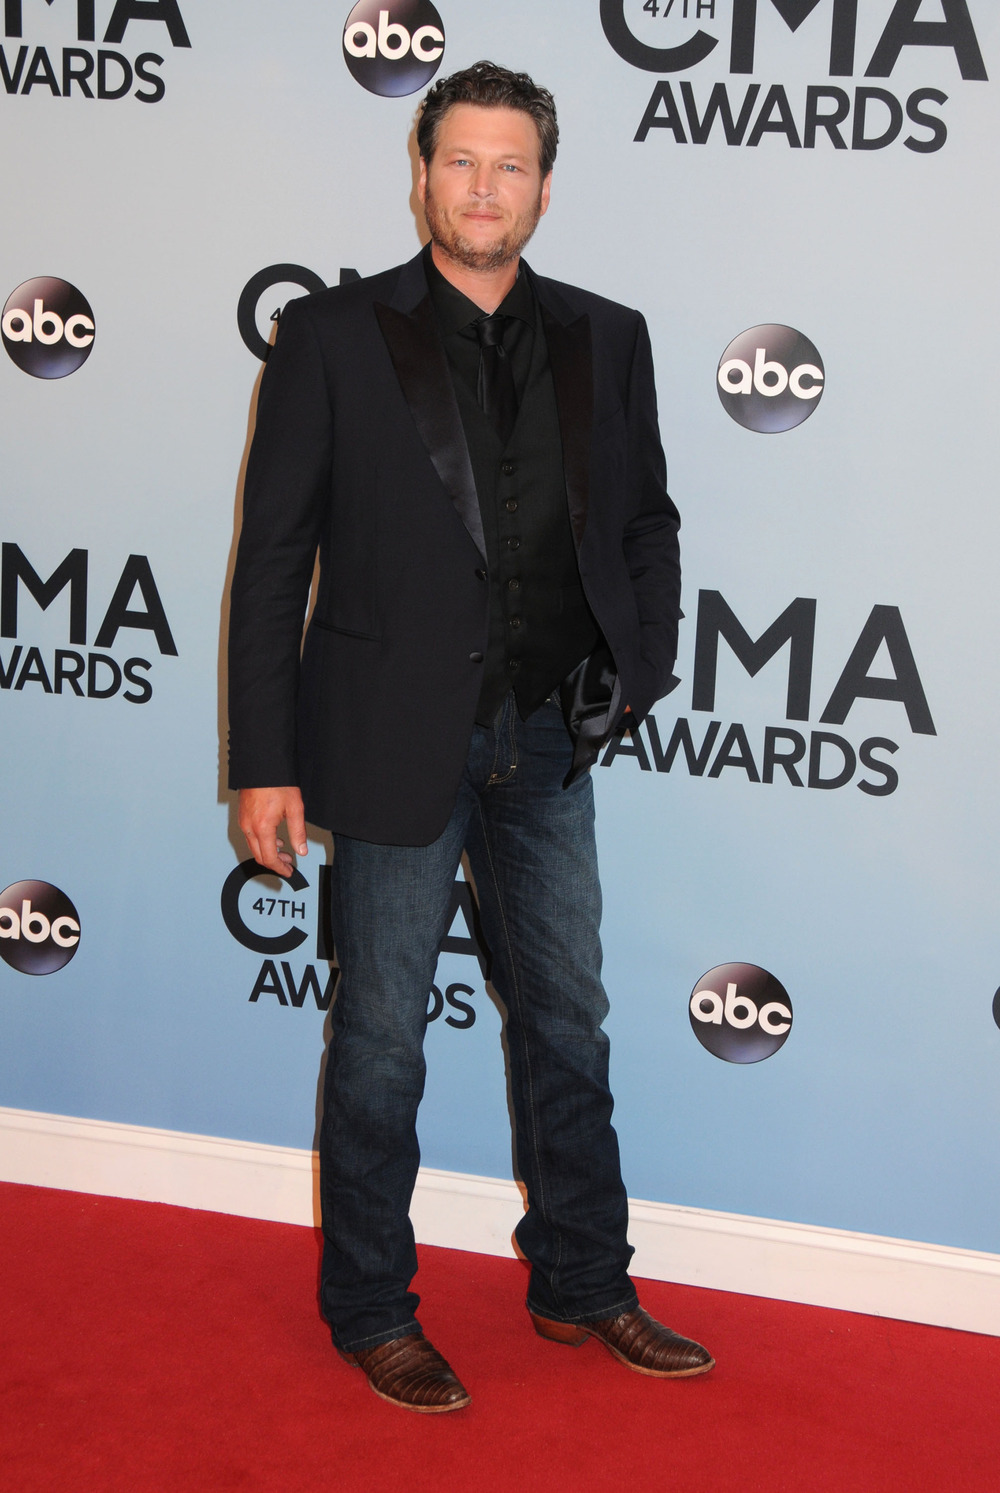 Blake Shelton Announces Summer 2014 Tour: Get the Details!